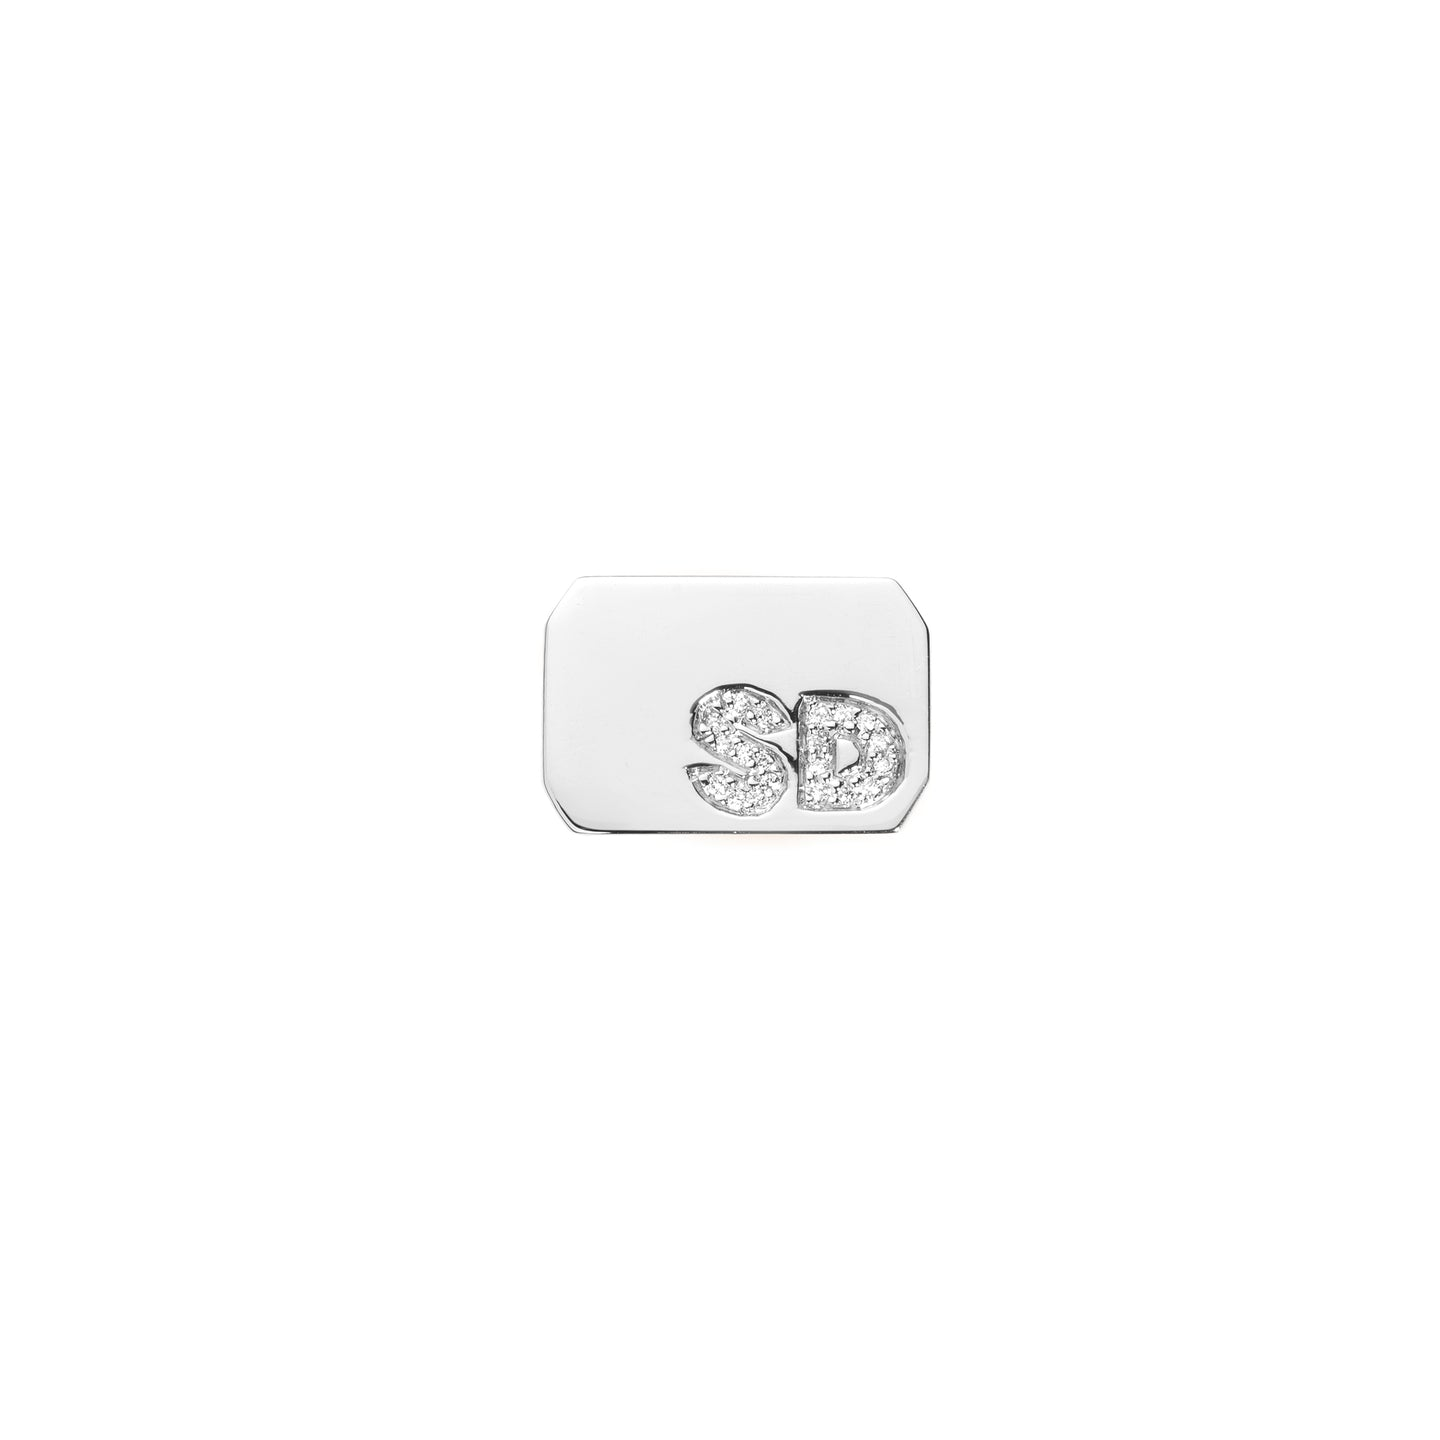 ACE Signet Ring with 2 Burnish White Diamond Letters